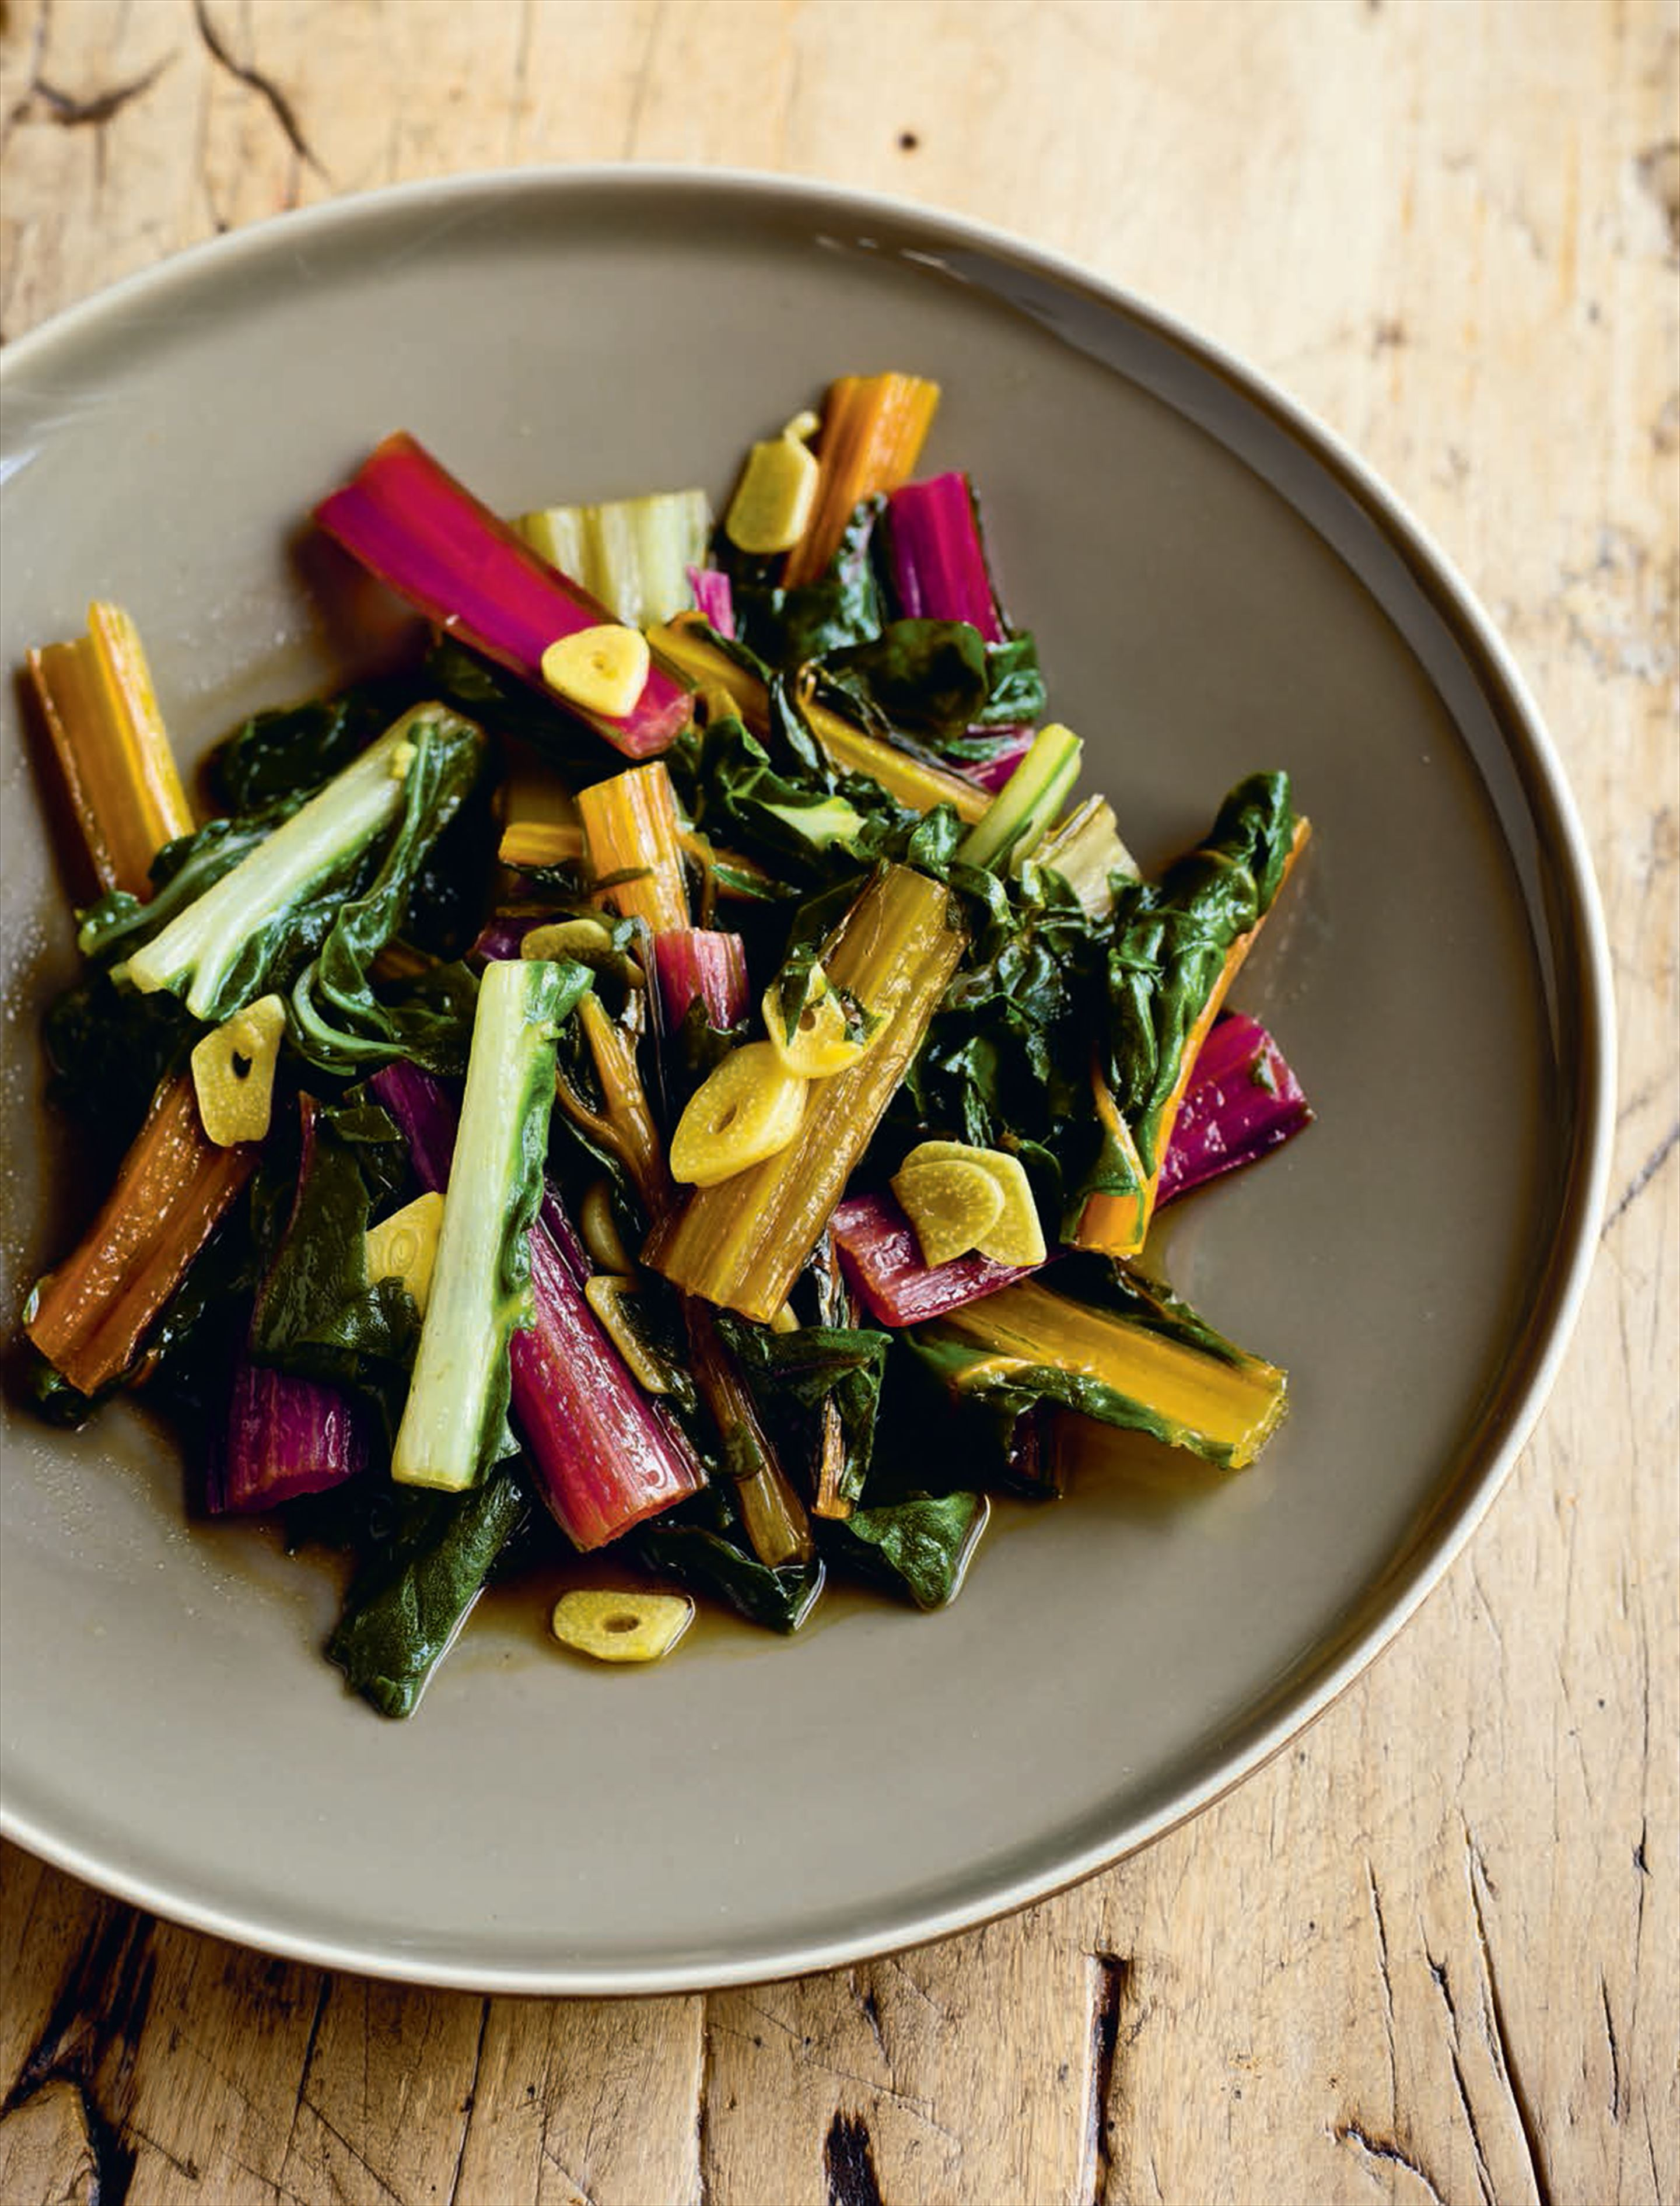 Smothered rainbow chard with garlic